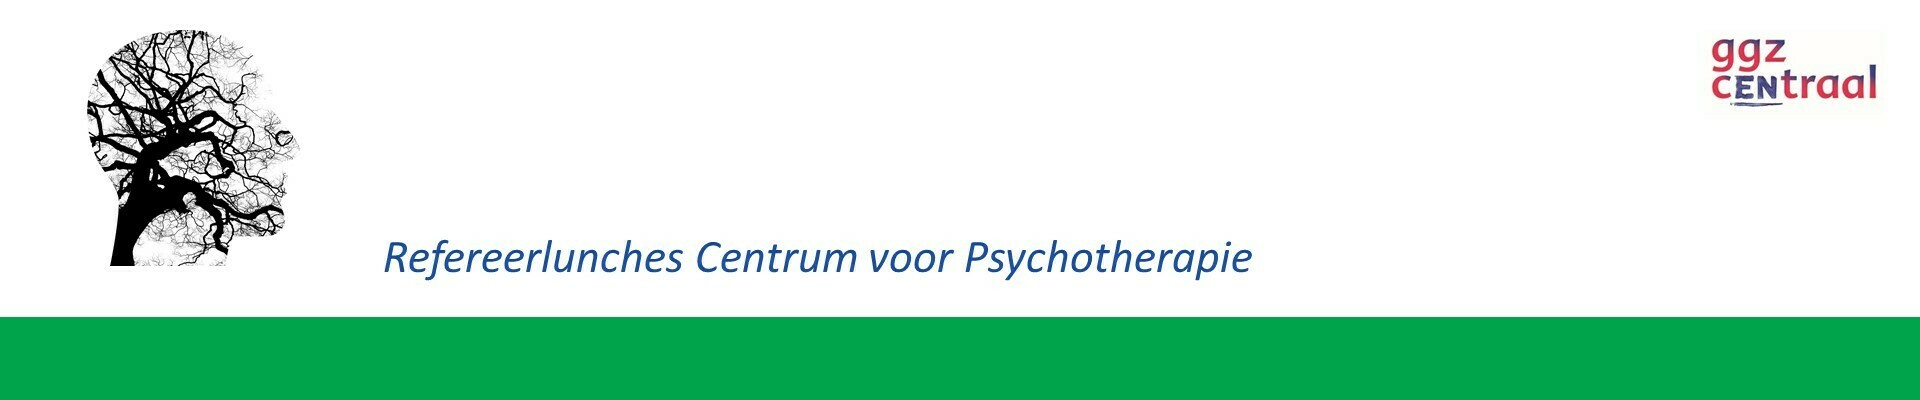 Refereerlunch Centrum voor Psychotherapie 10 november